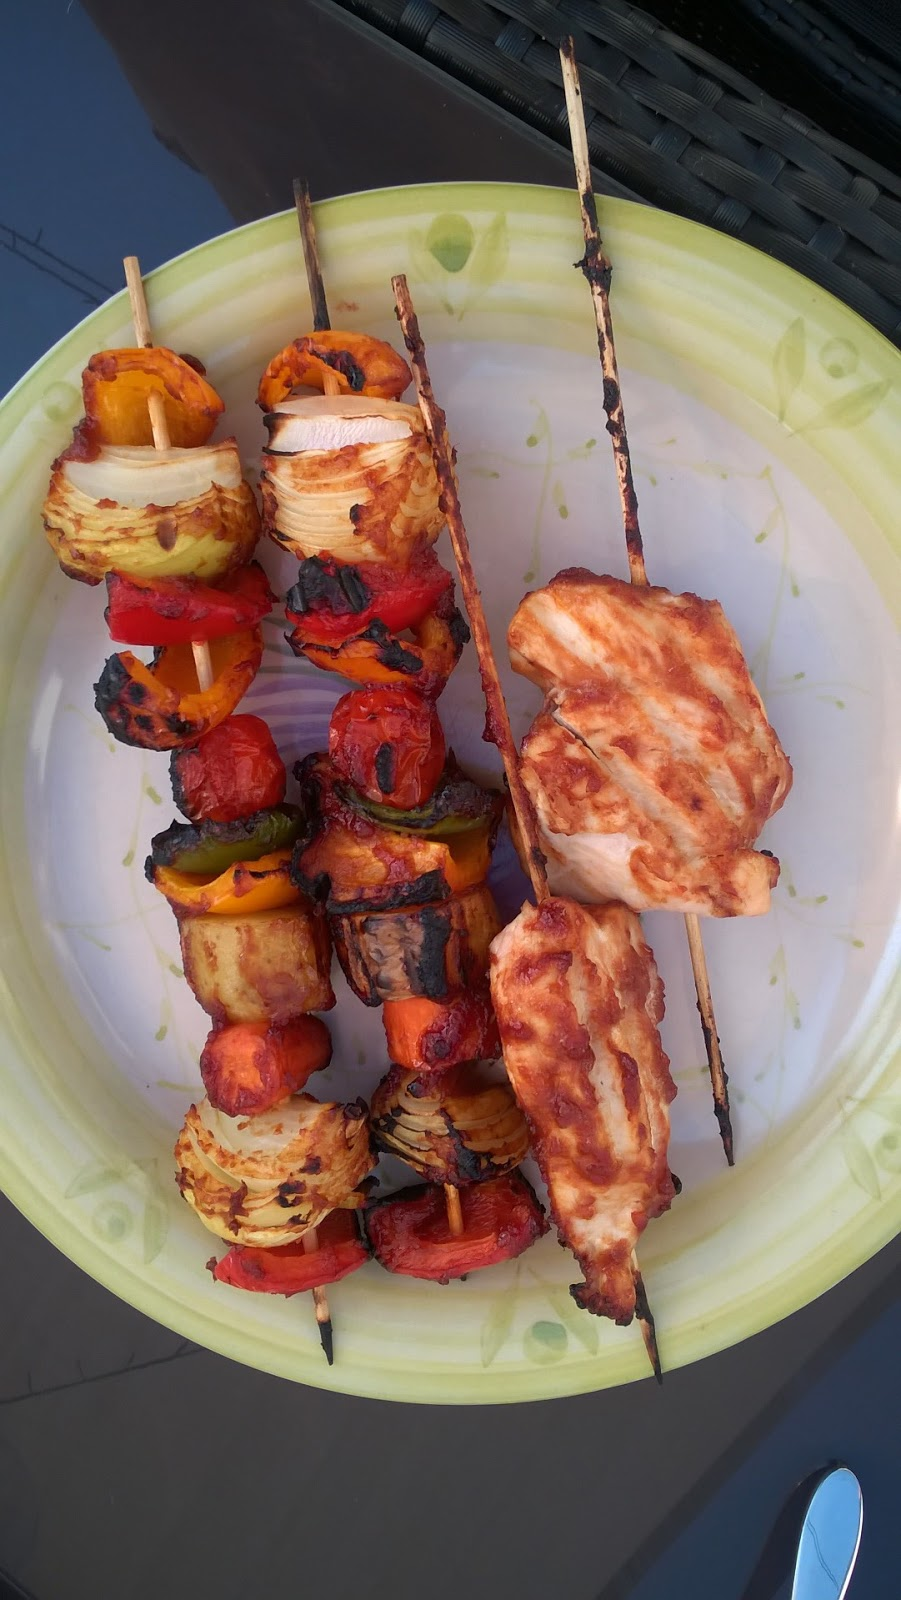 barbecue cleaning tips - the Husband's barbecued chicken kebabs